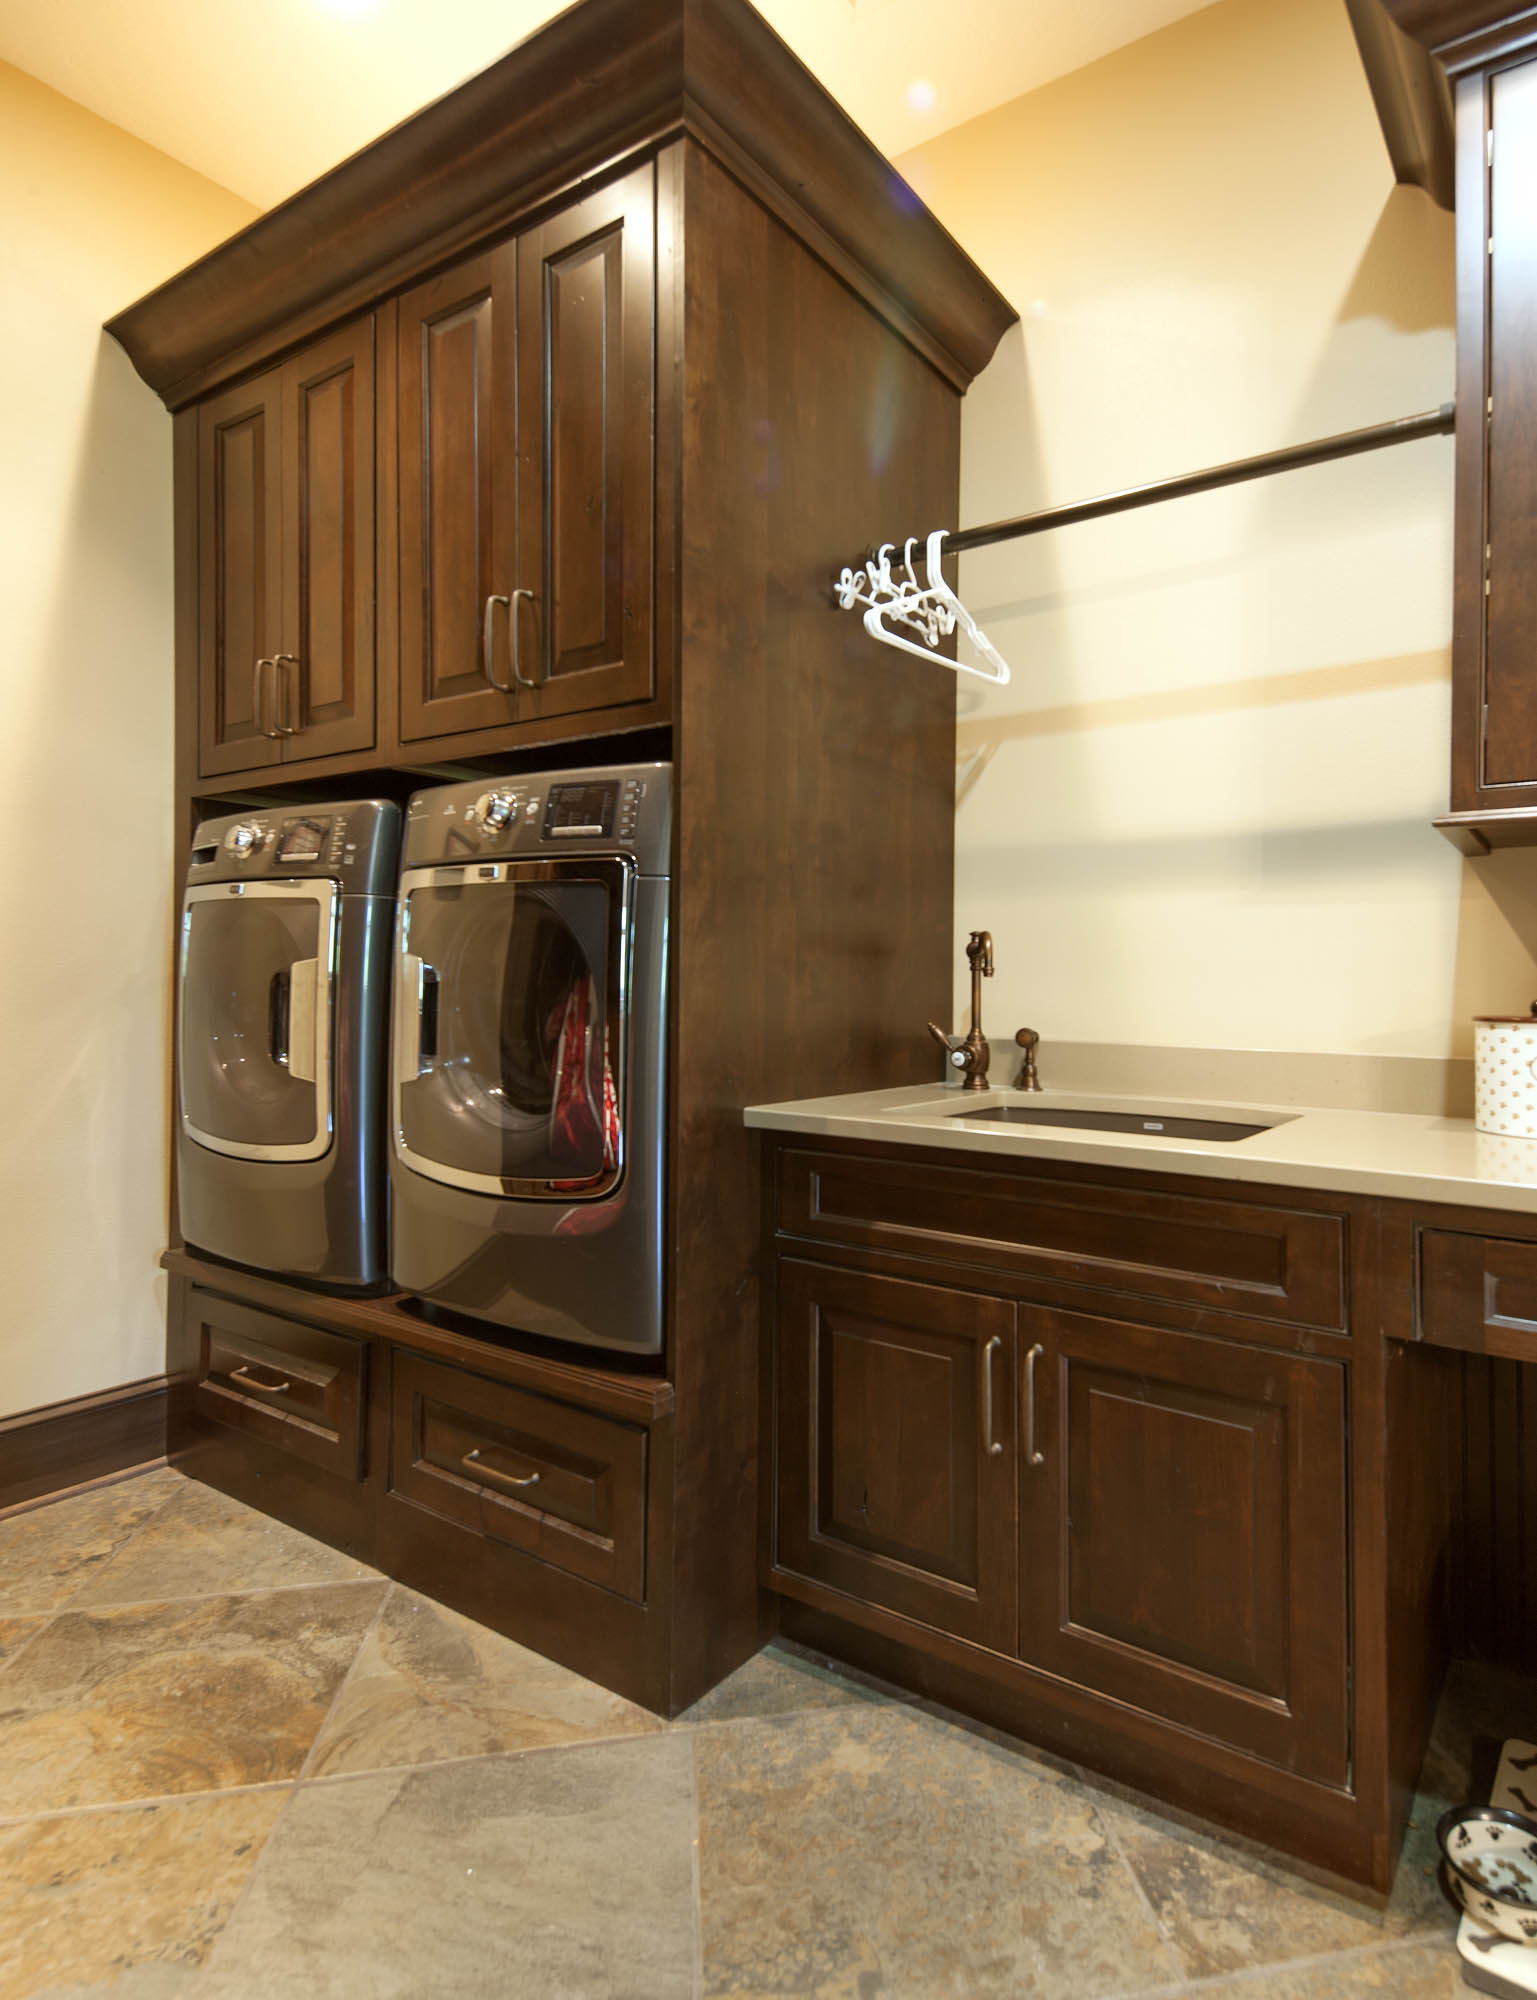 Stained laundry room cabinets in Distressed Coffee with Ebony Glaze by Showplace Cabinetry